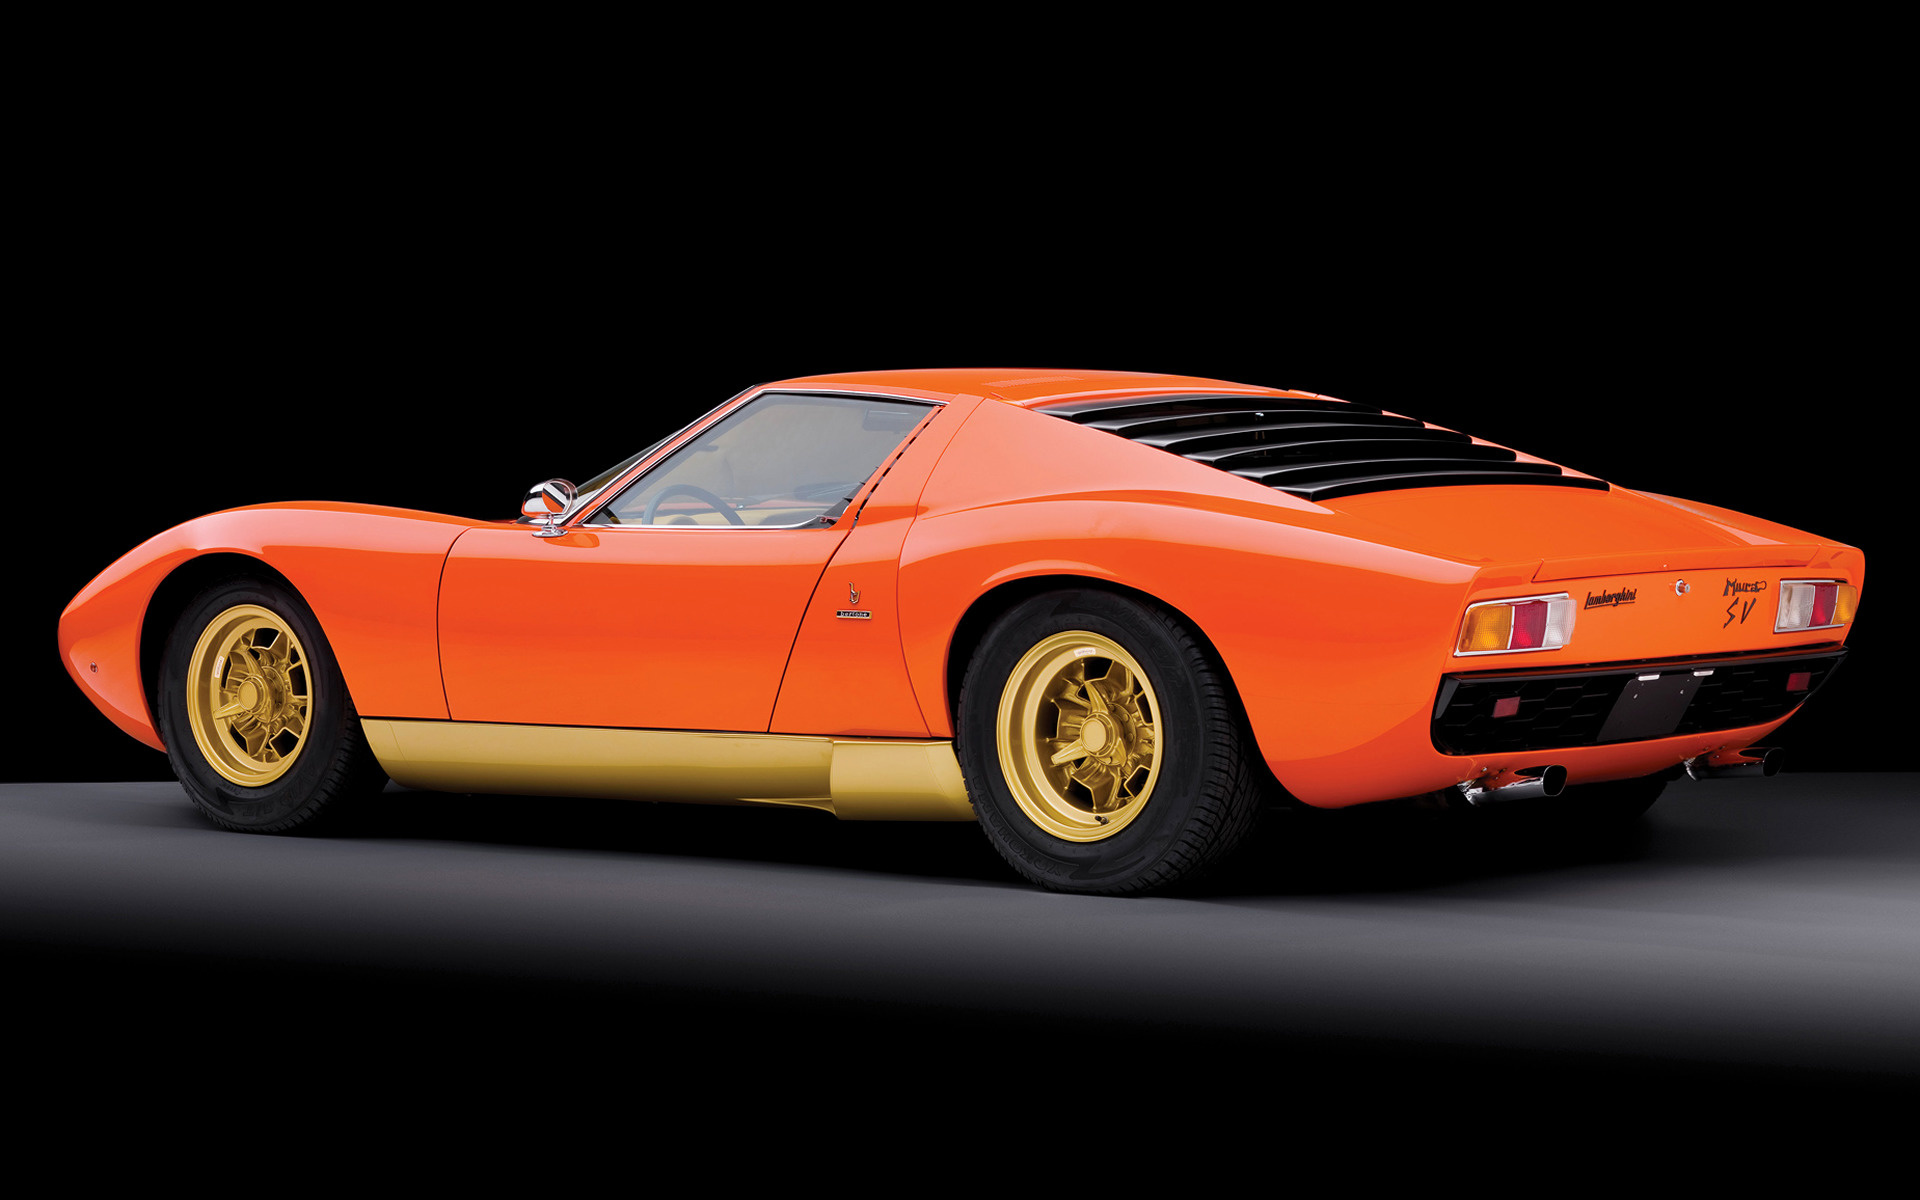 All Car Brands >> 1971 Lamborghini Miura SV - Wallpapers and HD Images | Car Pixel